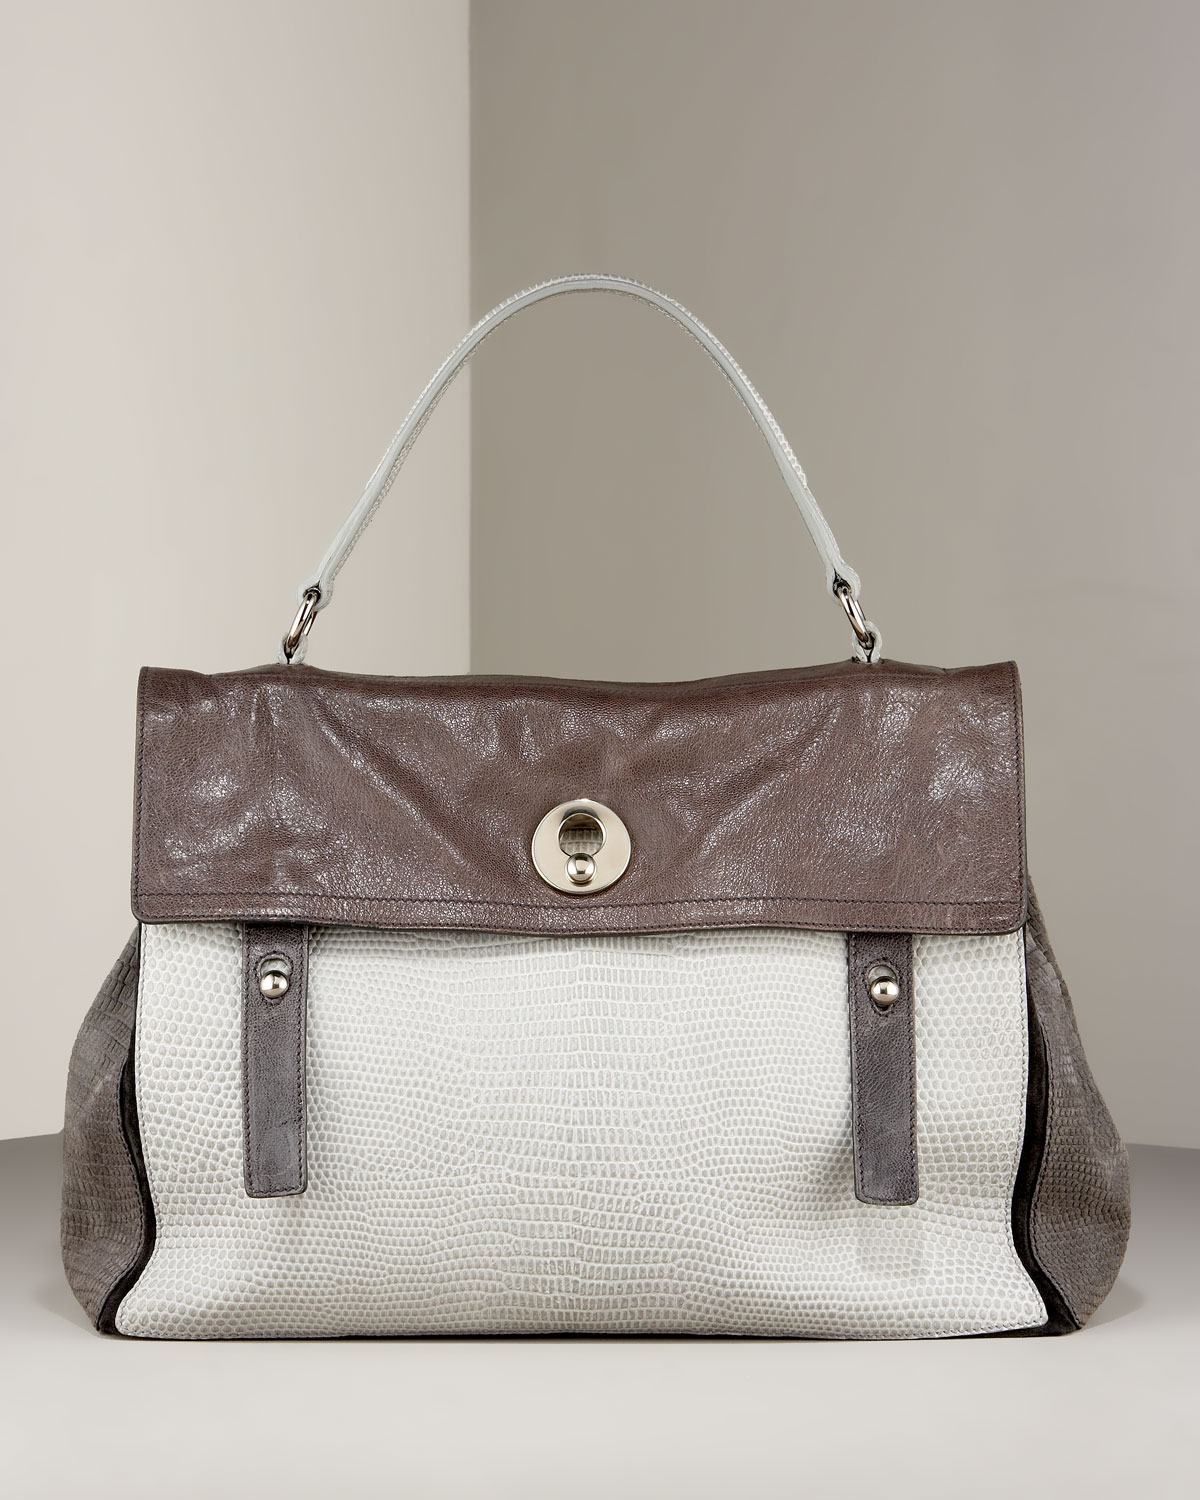 Muse Two-Flap Shoulder Bag - Yves Saint Laurent - Bergdorf Goodman :  lizard bergdorf goodman bag fall